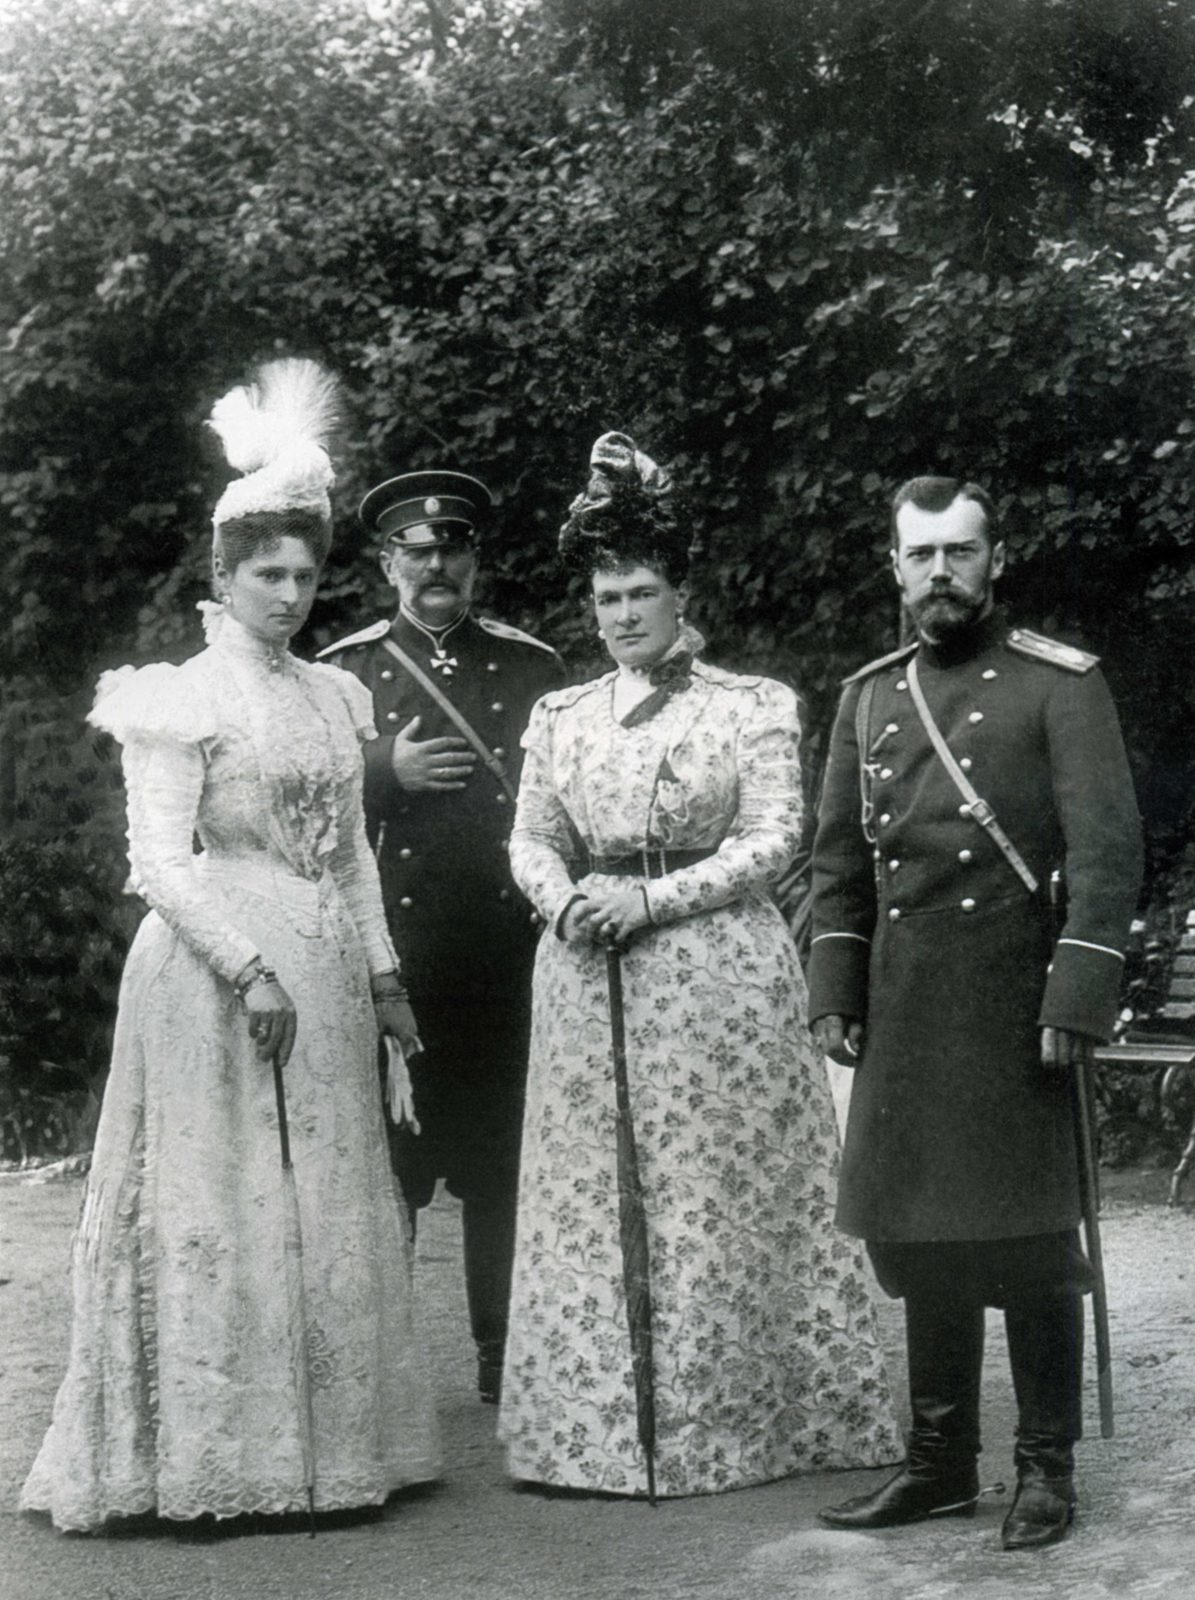 Group portrait: Emperor Nicholas II and Empress Alexandra Feodorovna.